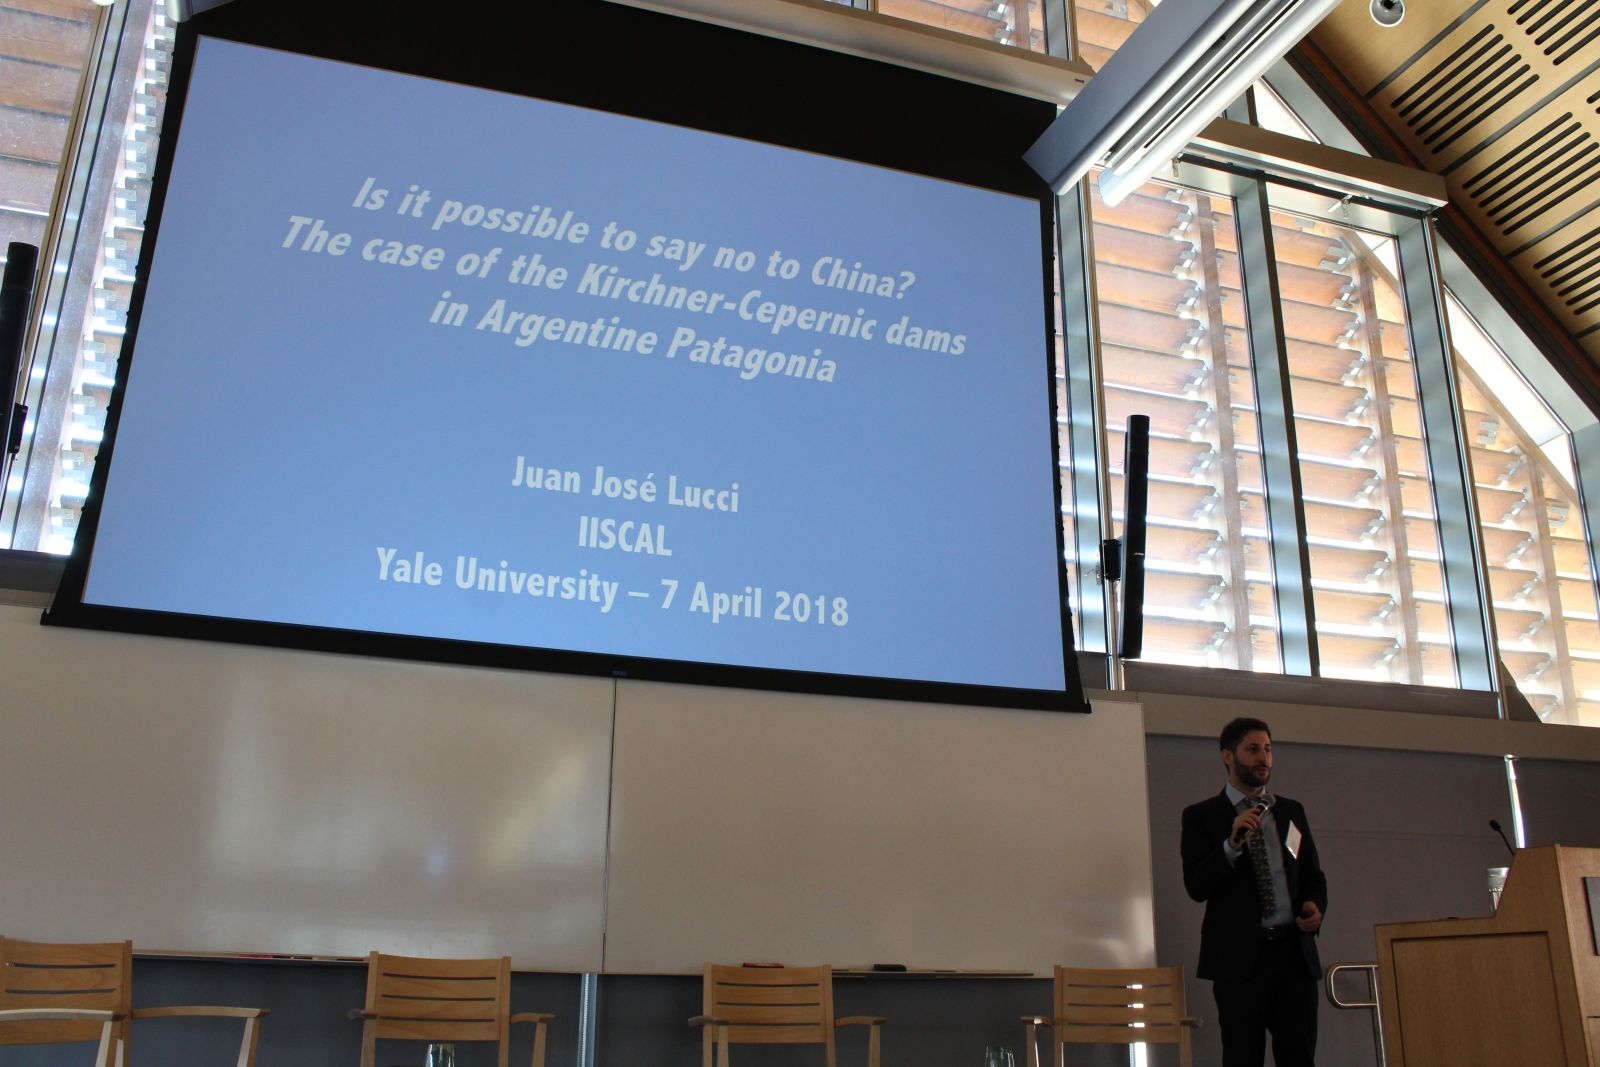 Juan Lucci, researcher at the Bank Information Center's China-Latin America Sustainable Investments Initiative, gave an eye-opening presentation about the current trends of Chinese investments in Latin America, using a case study about hydropower infrastructure in Argentina.